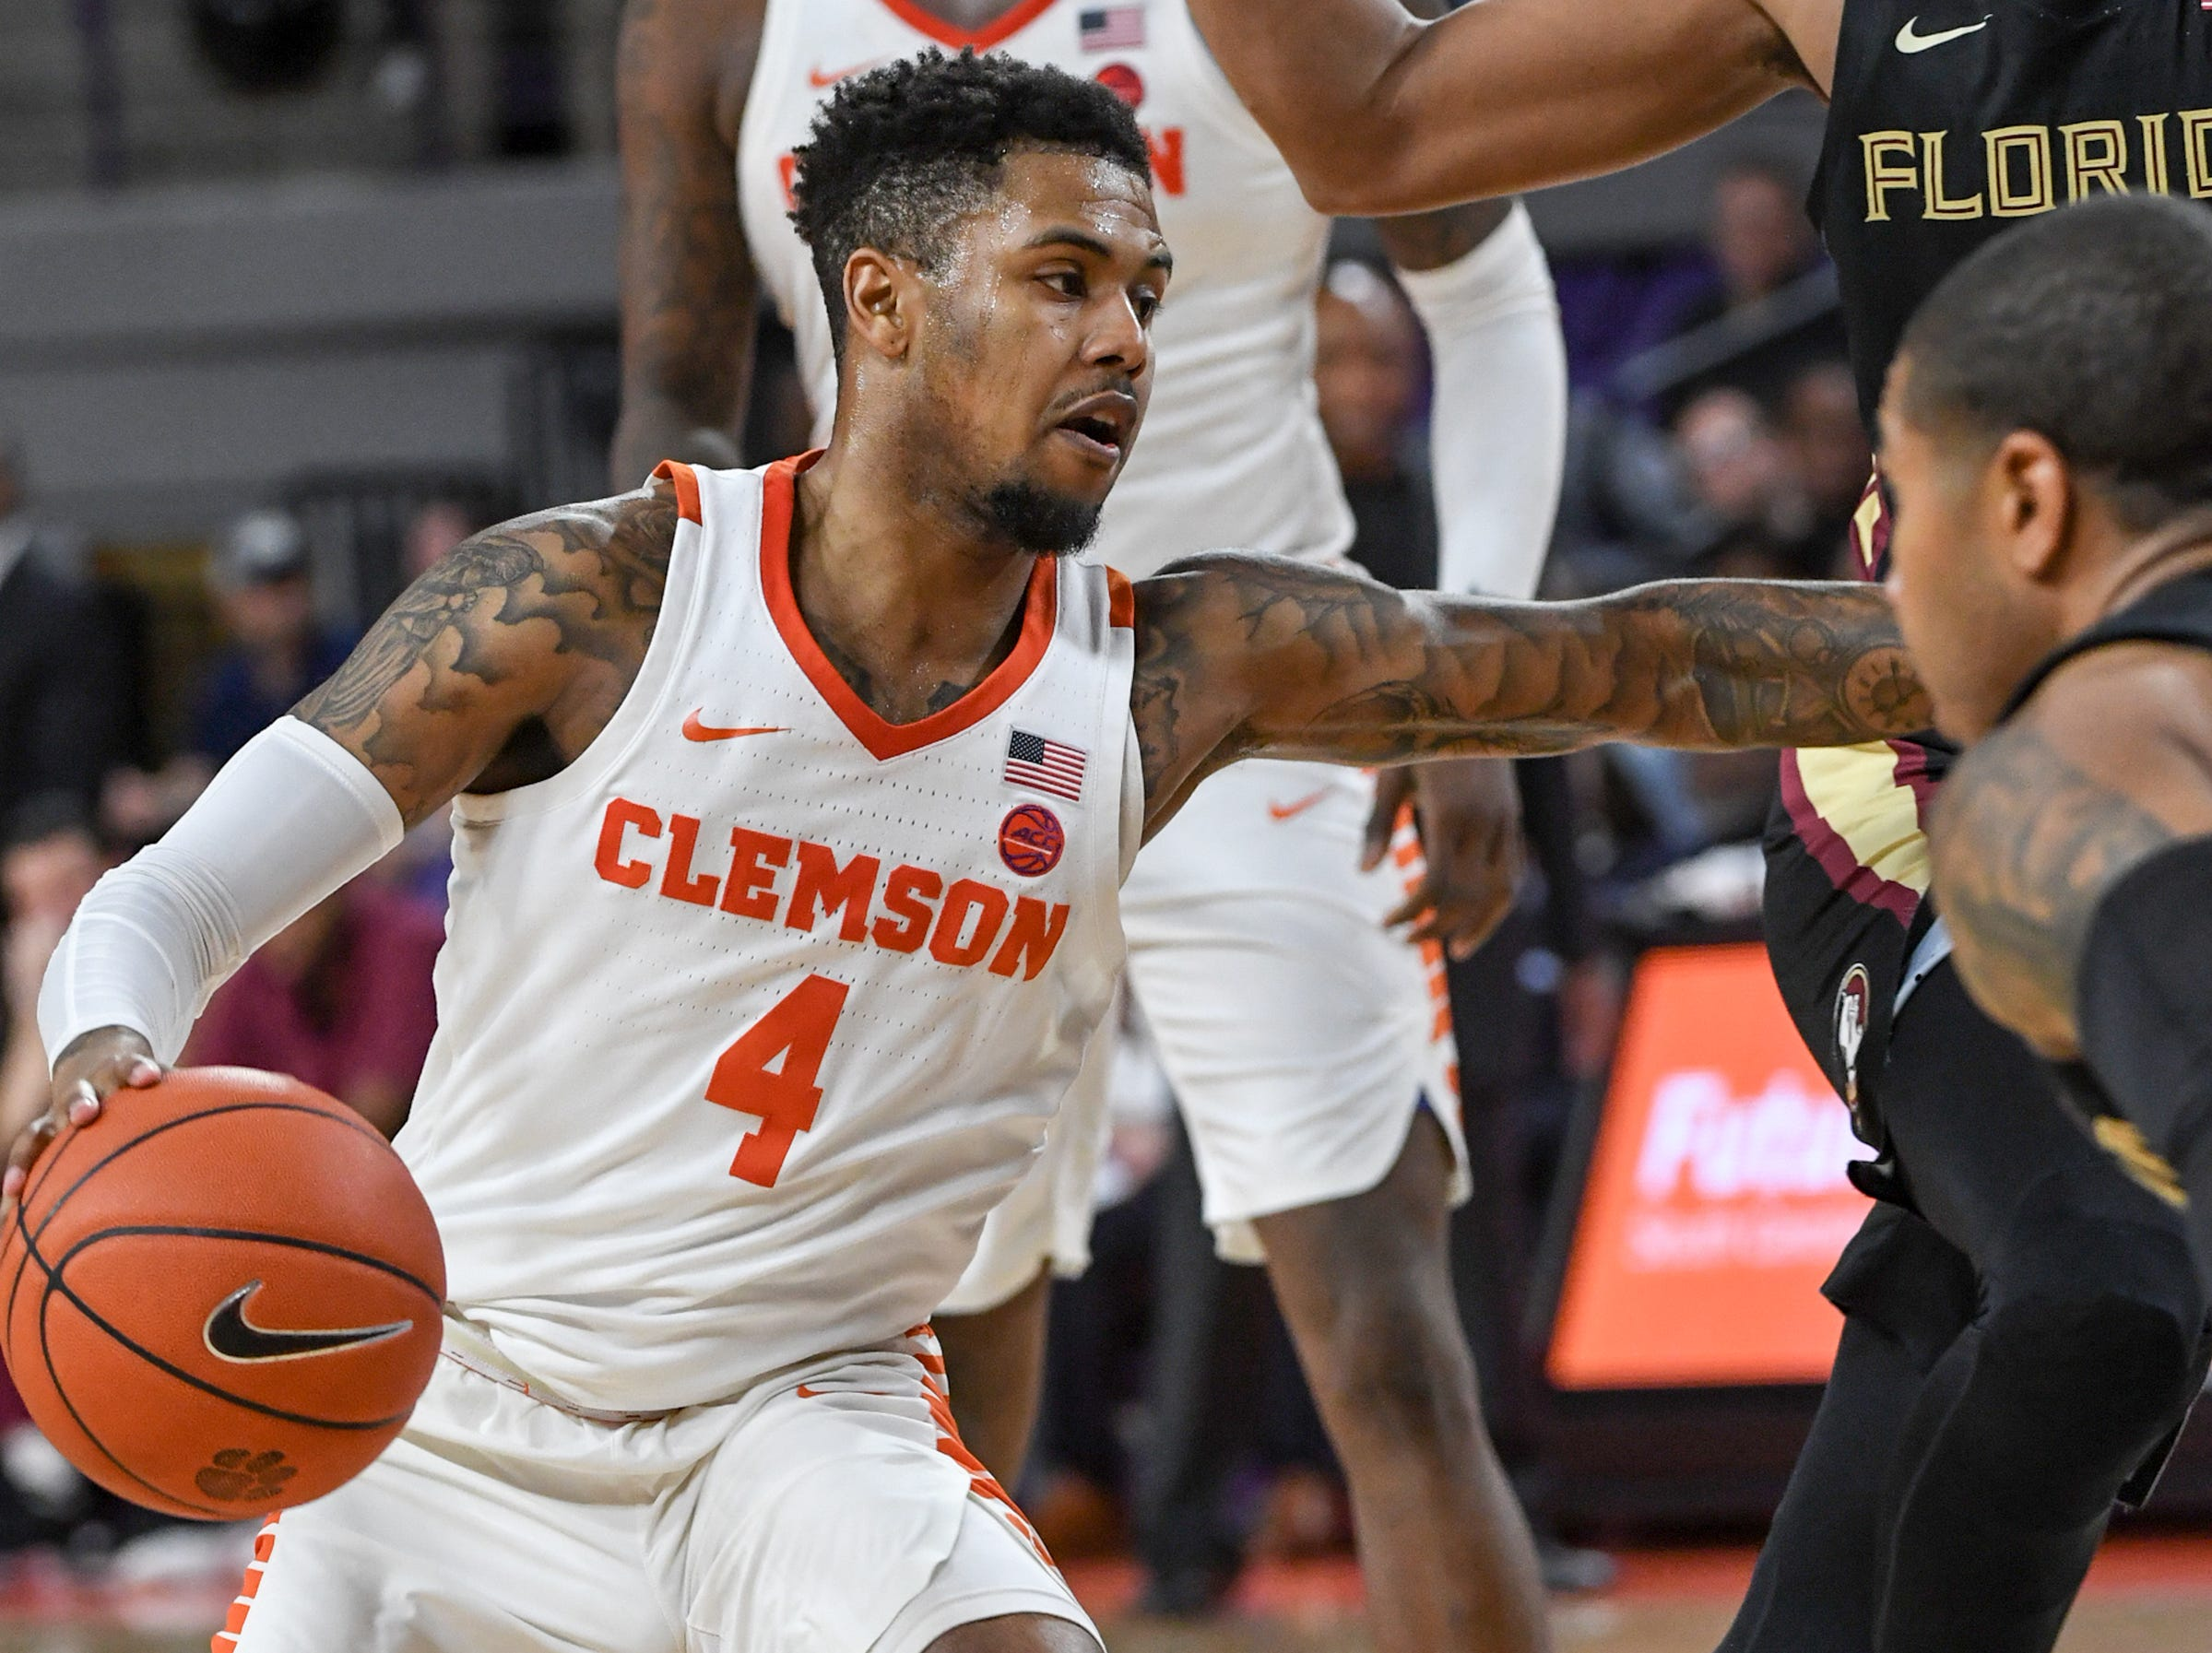 Clemson guard Shelton Mitchell (4) plays against Florida State during the second half at Littlejohn Coliseum in Clemson Tuesday, February 19, 2019.